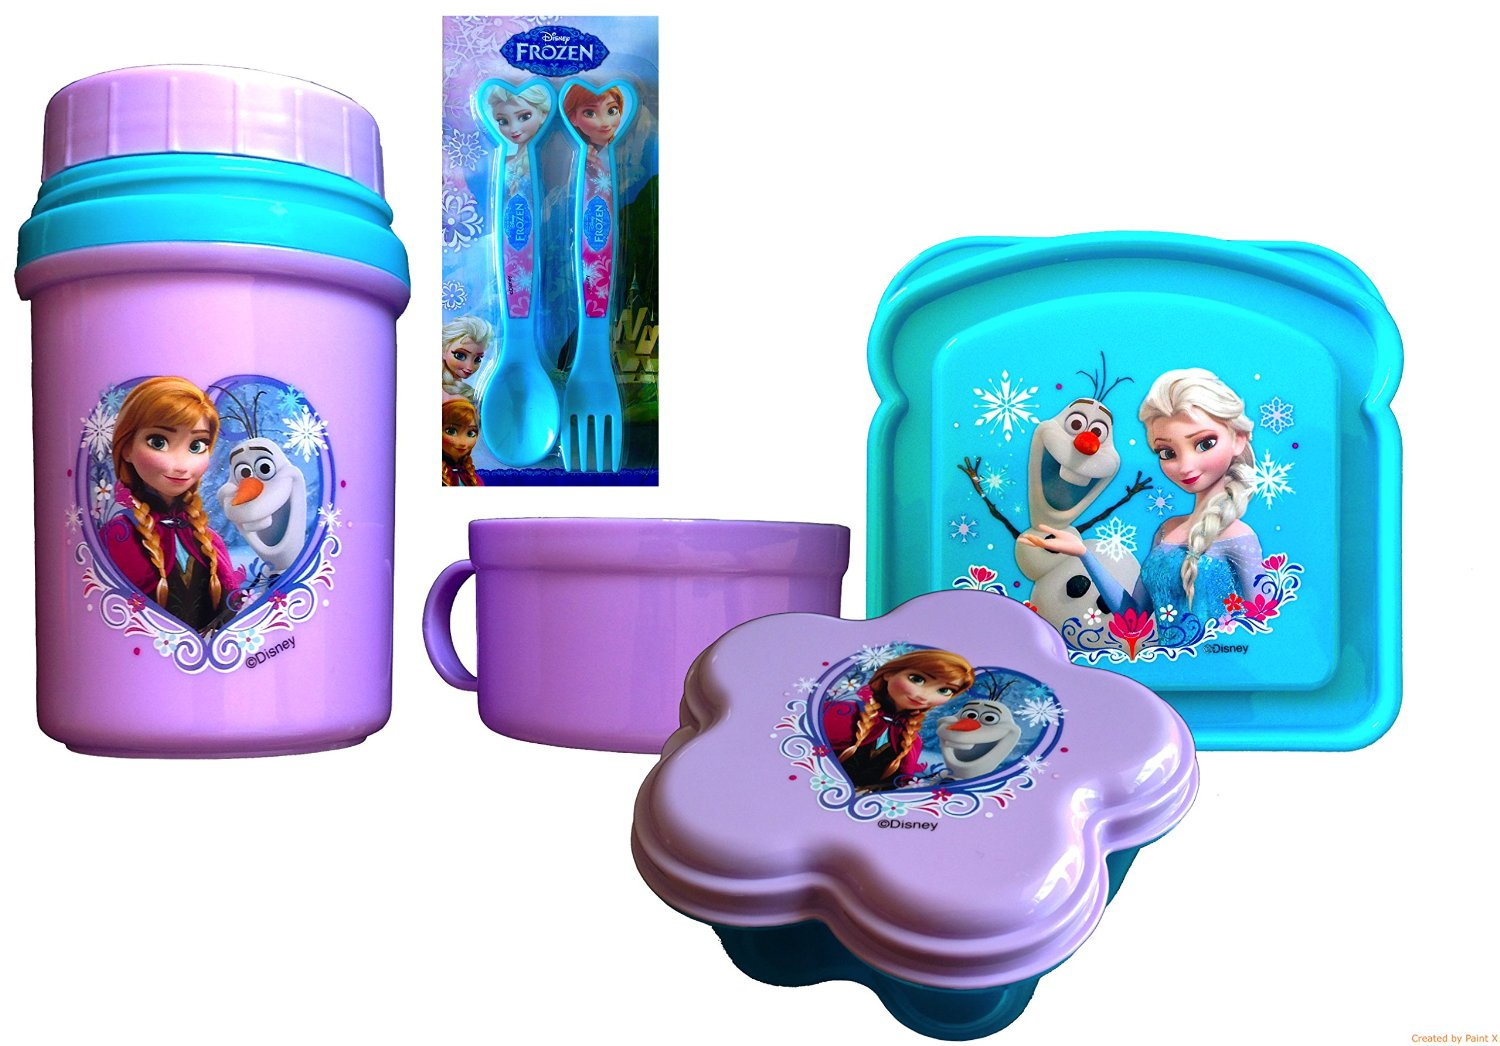 Disney Frozen Thermal Drink ware Complete Lunch Gift Set Elsa,Olaf, and Anna, 4 Piece Lunch Gift Set Includes Utensils